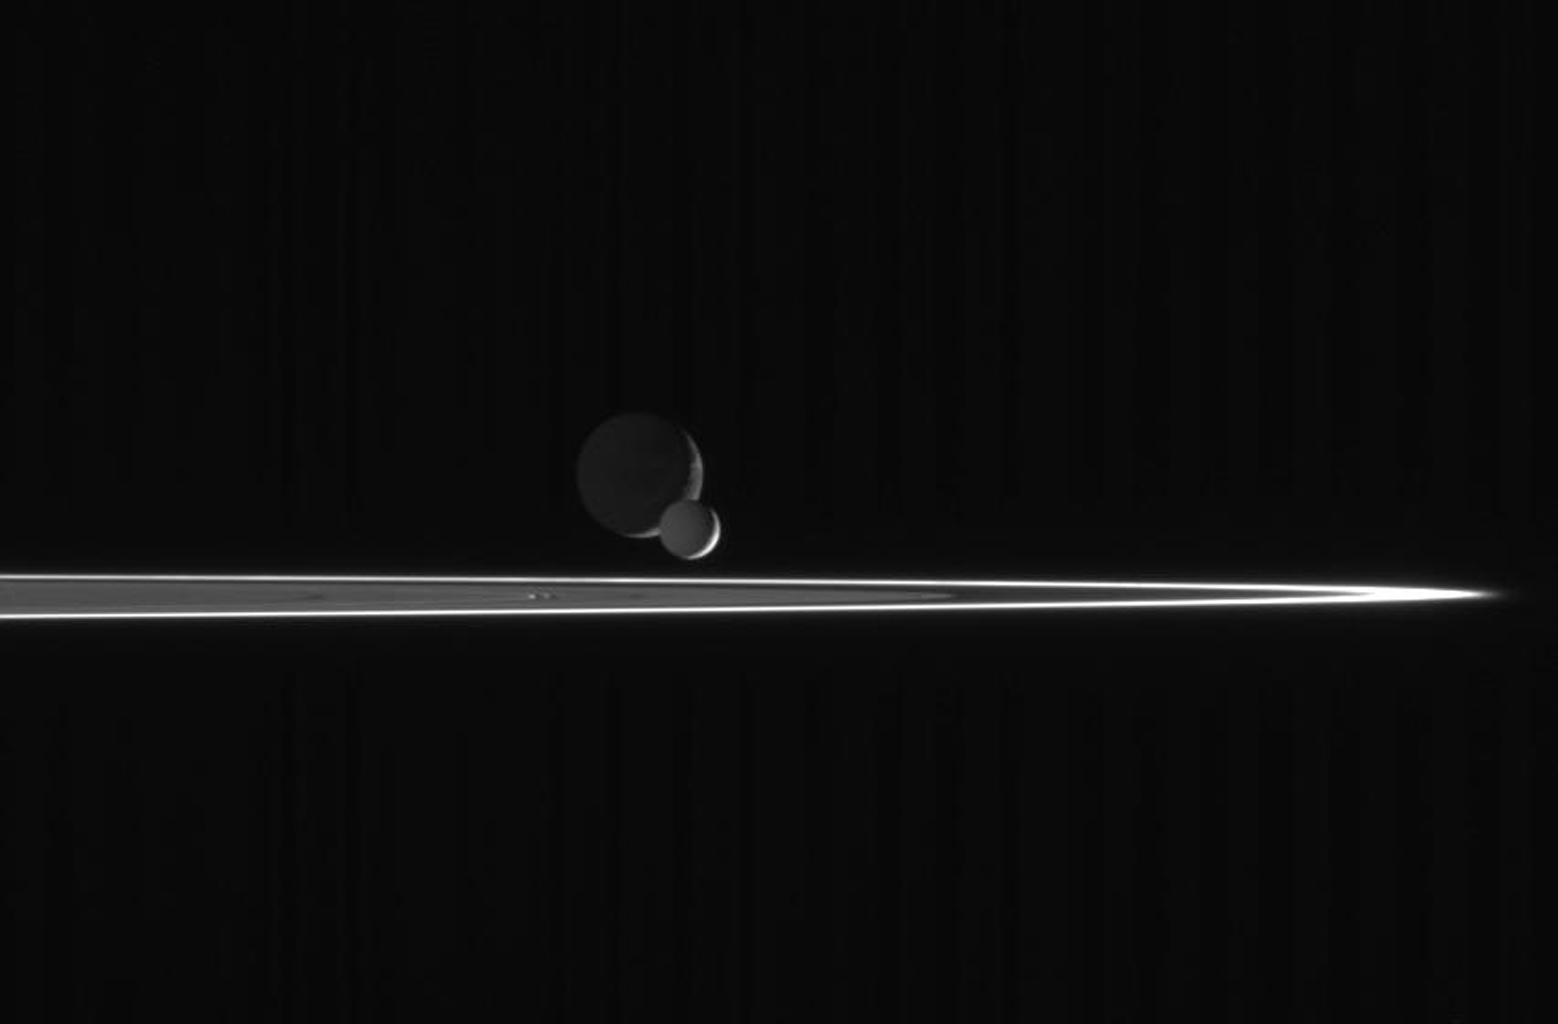 As our robotic emissary to Saturn, NASA's Cassini spacecraft is privileged to behold such fantastic sights as this pairing of two moons beyond the rings. The bright, narrow F ring is the outermost ring structure seen here.